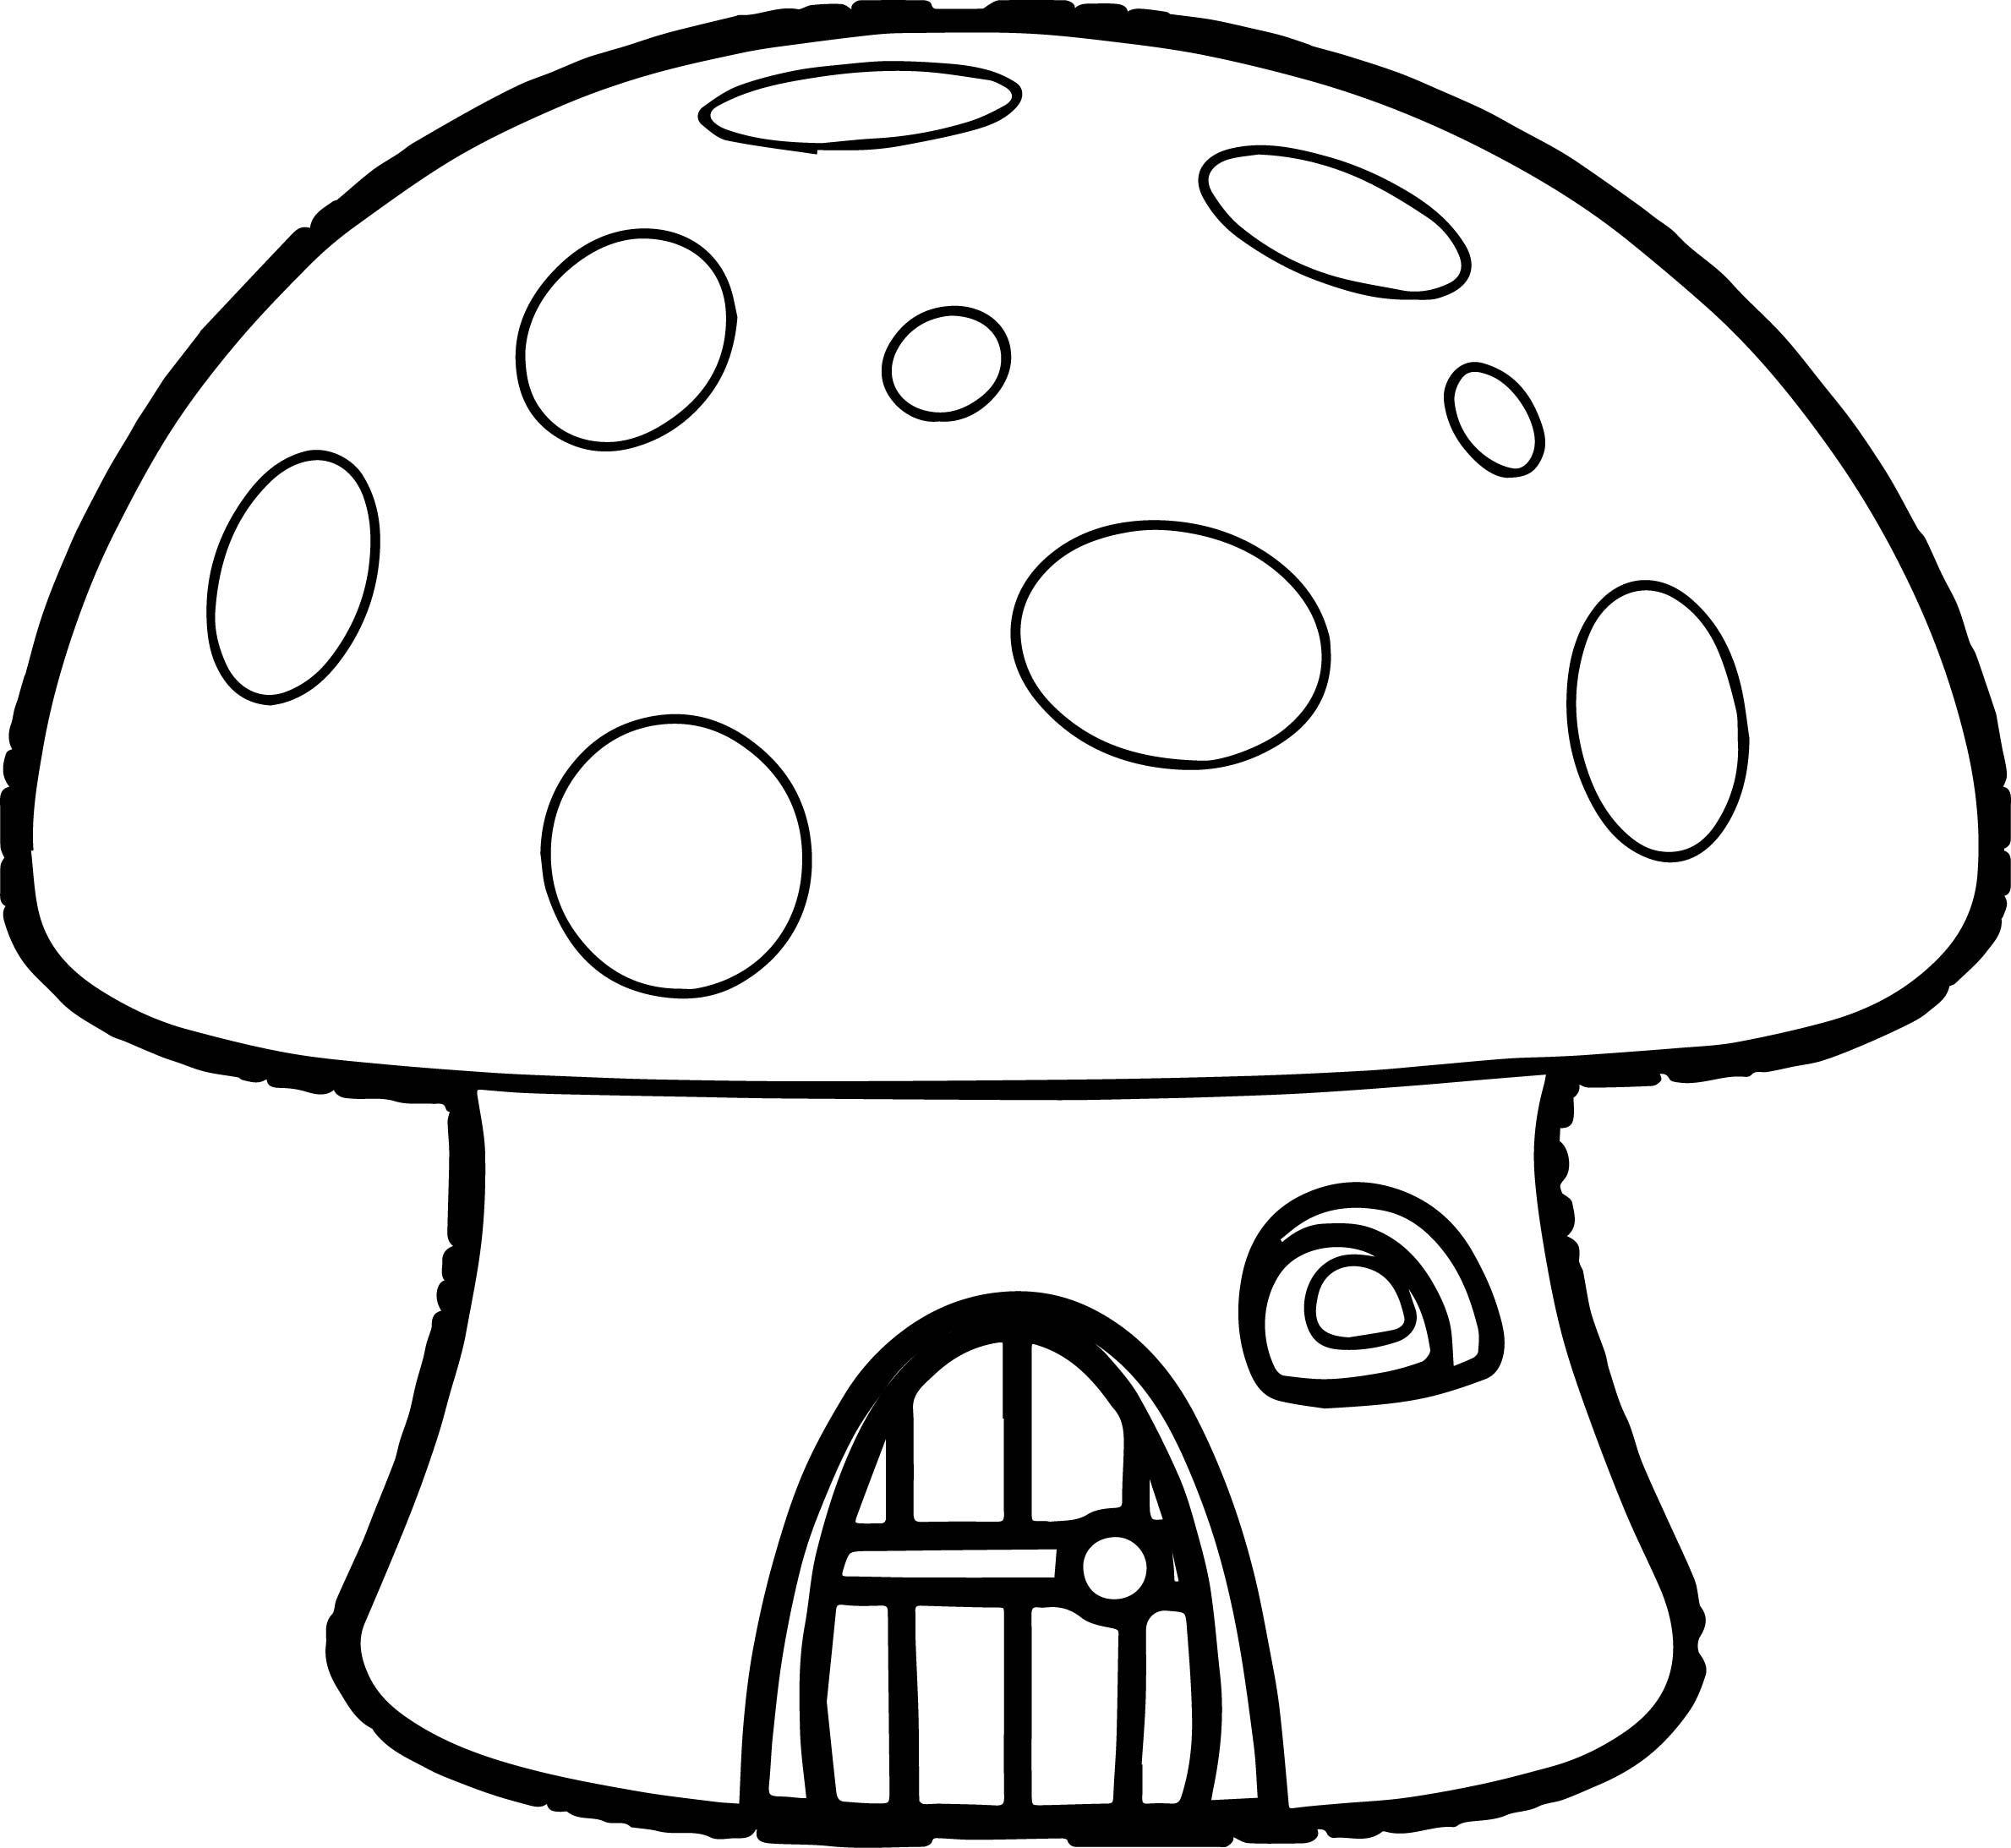 orange mushroom house smurf coloring page wecoloringpagecom